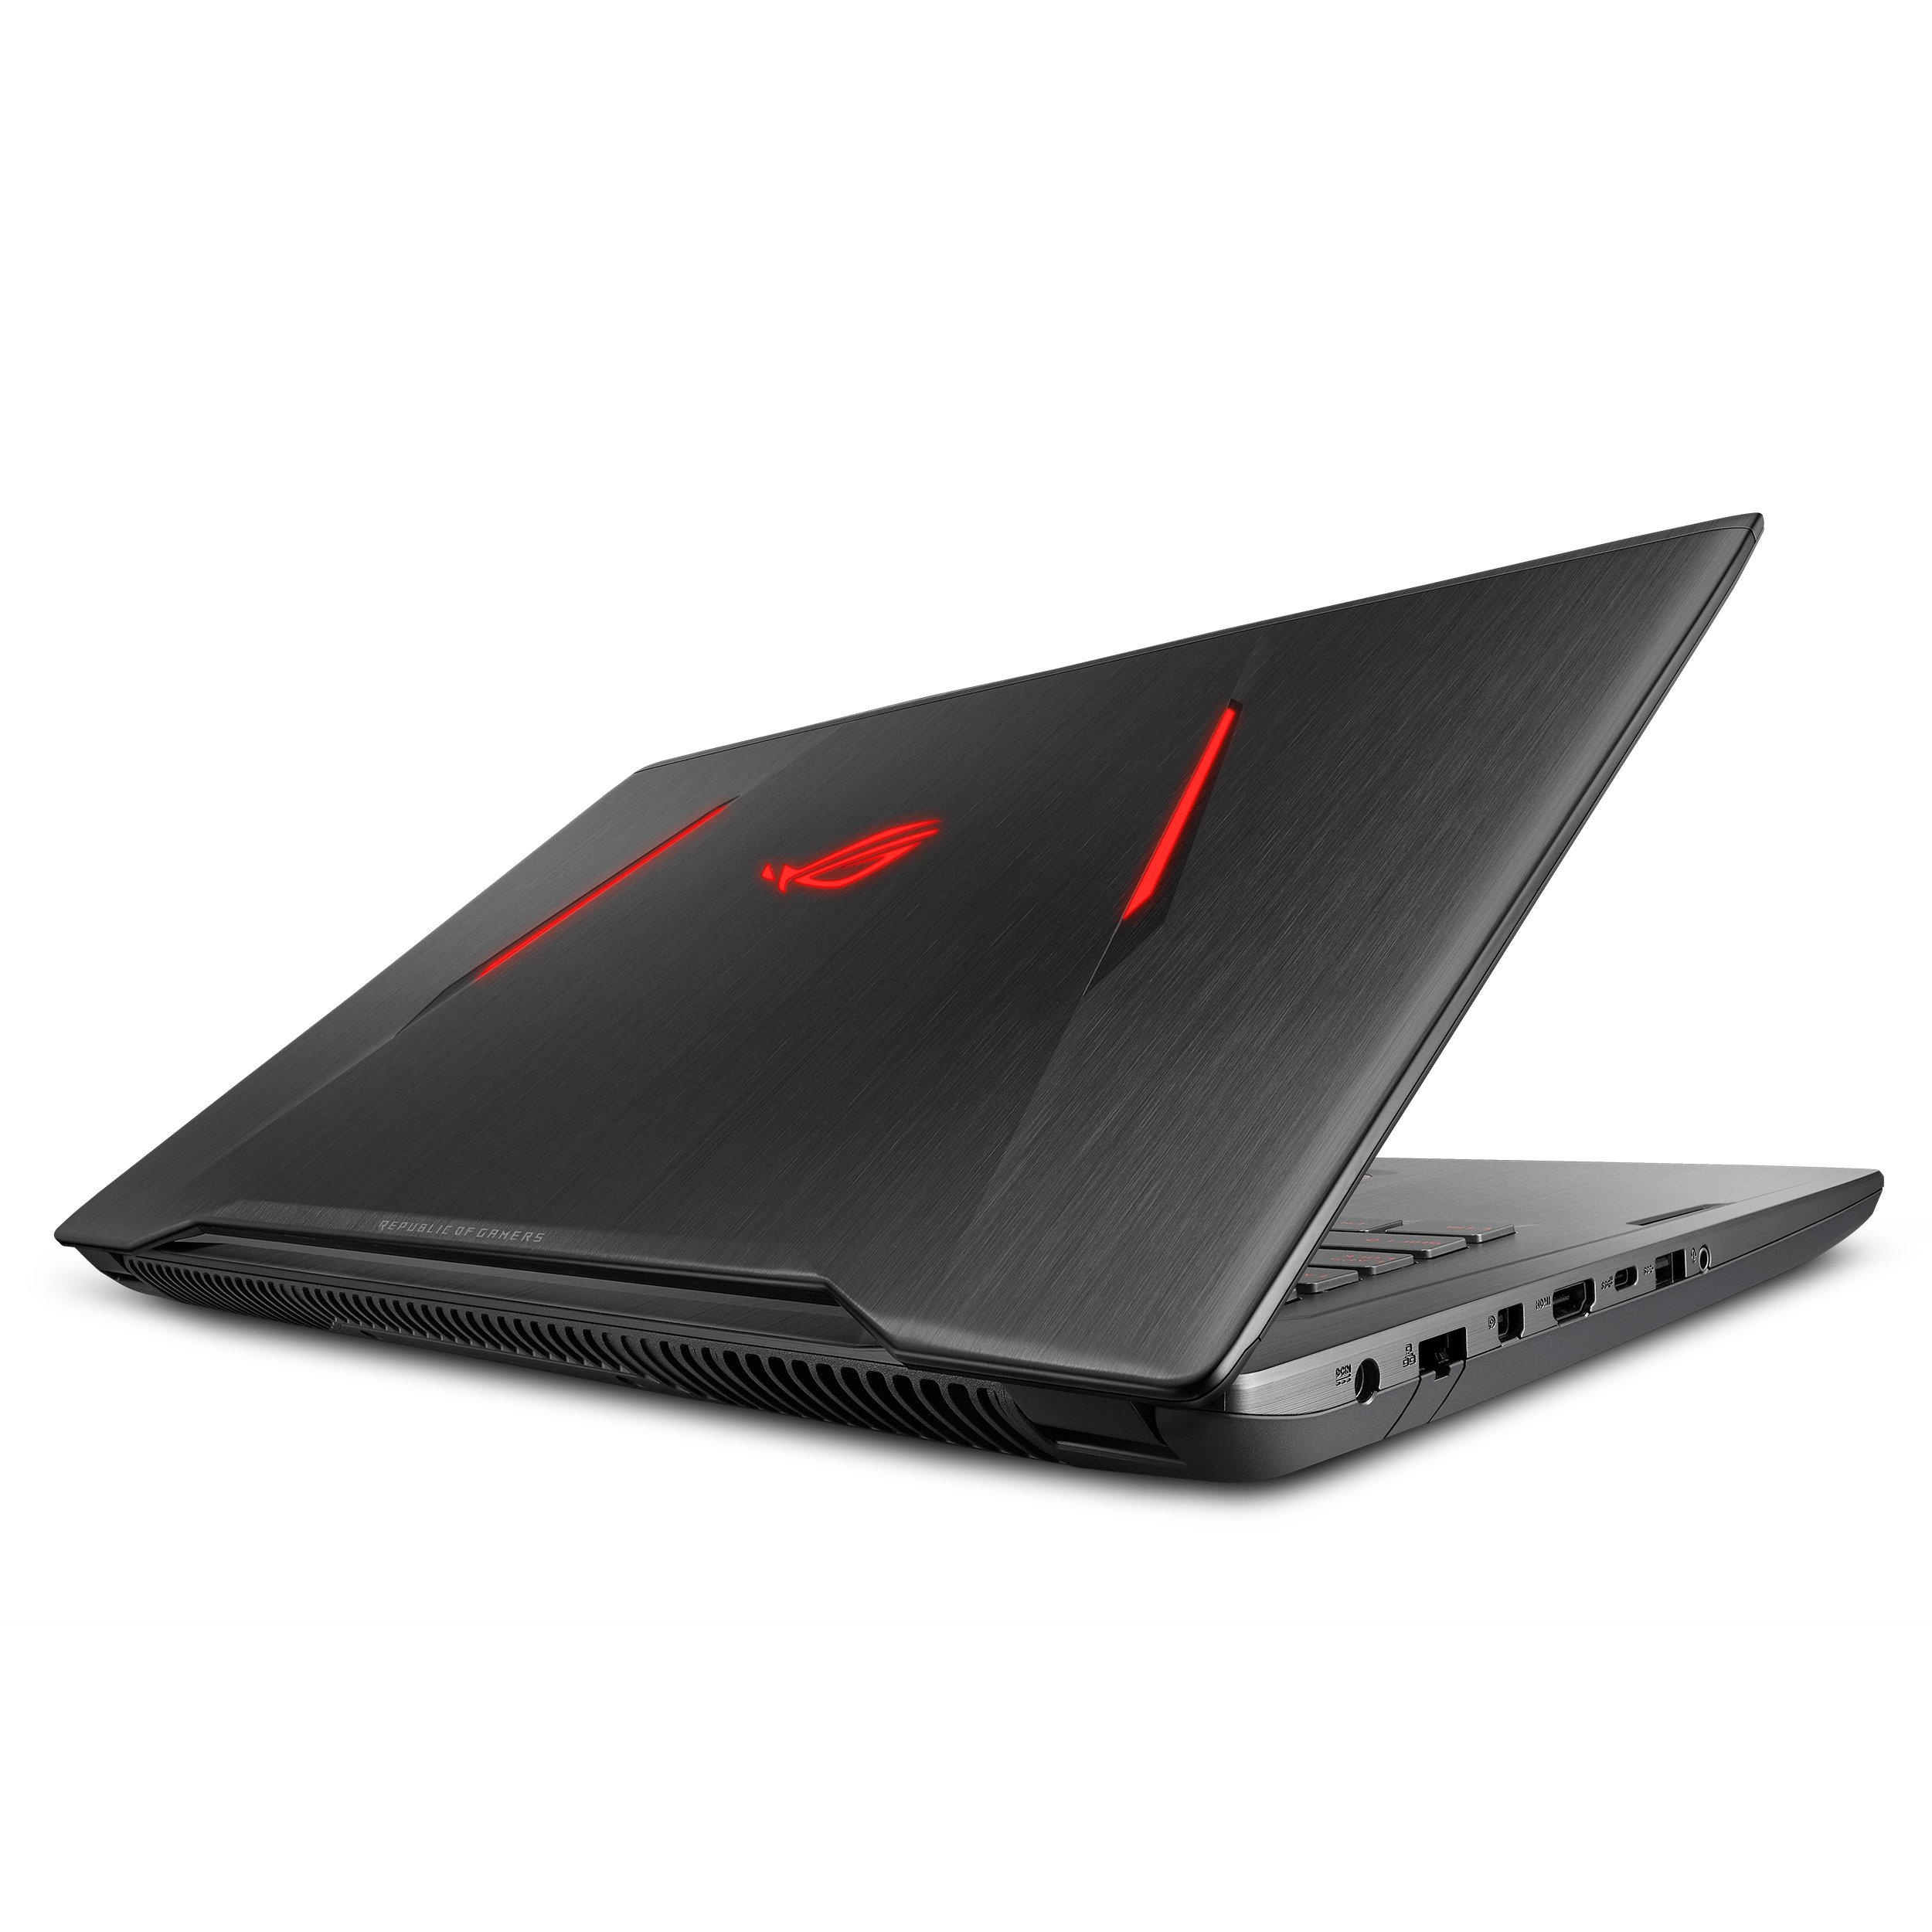 "ASUS ROG STRIX AMD Gaming Laptop, Ryzen 7 1700, Radeon RX580 4GB, 17.3"" FHD FreeSync Display, 16GB DDR4, 256GB SSD + 1TB HDD, Video Editing, GL702ZC by Asus"